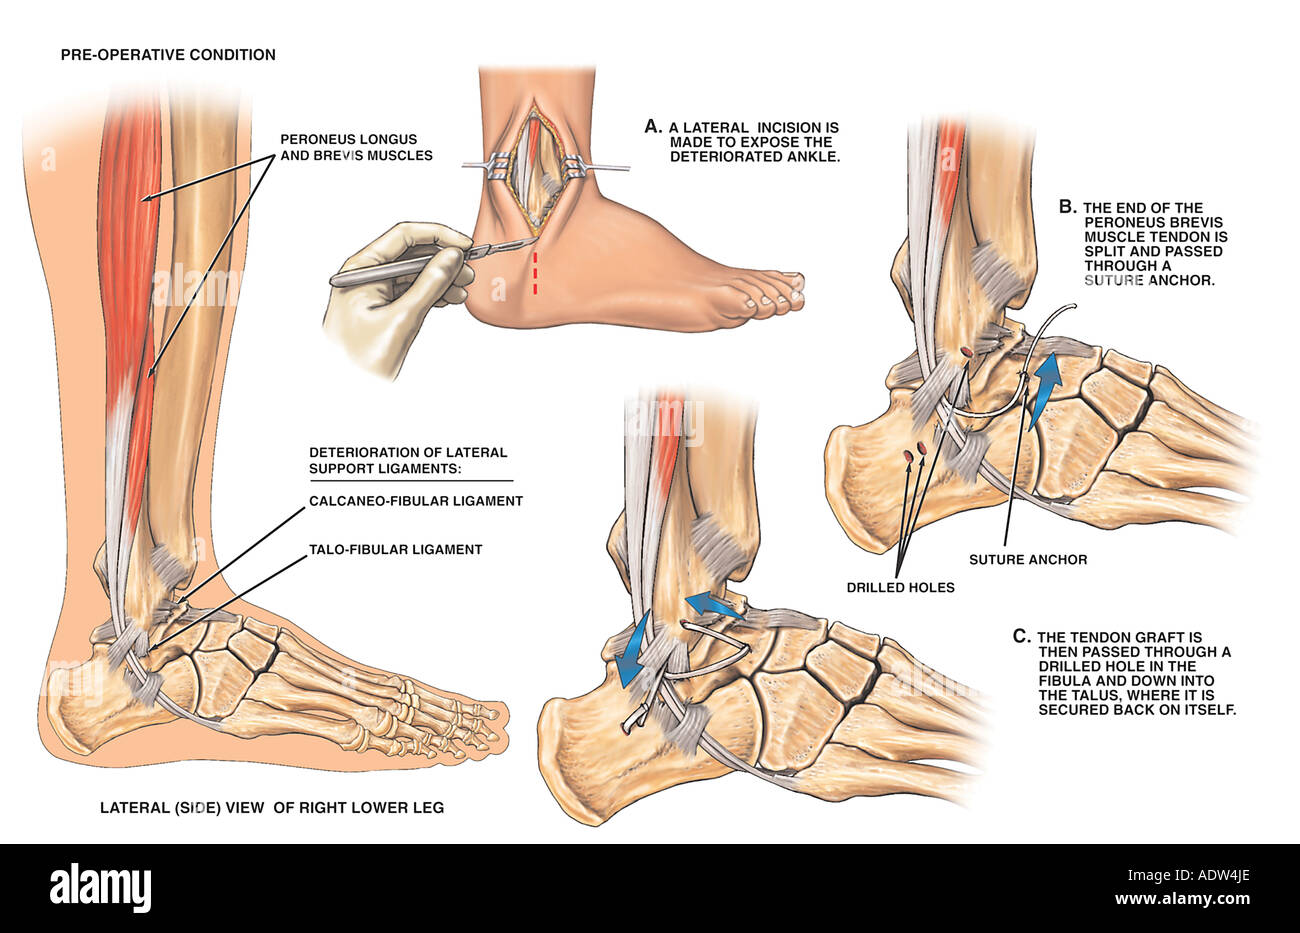 Images of Lateral Ankle Ligaments - #SpaceHero